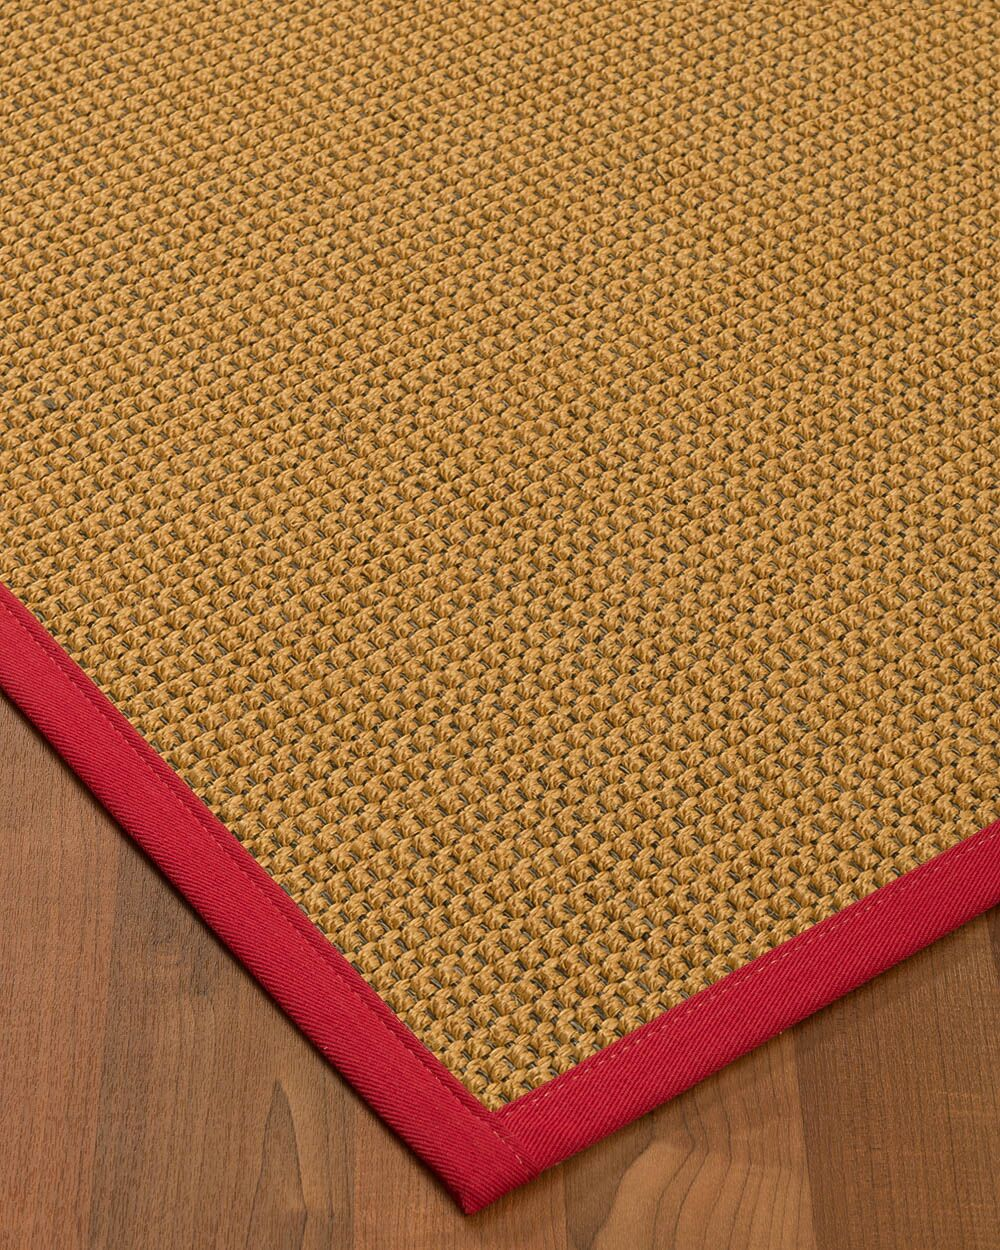 Atia Border Hand-Woven Beige/Red Area Rug Rug Pad Included: No, Rug Size: Rectangle 3' x 5'